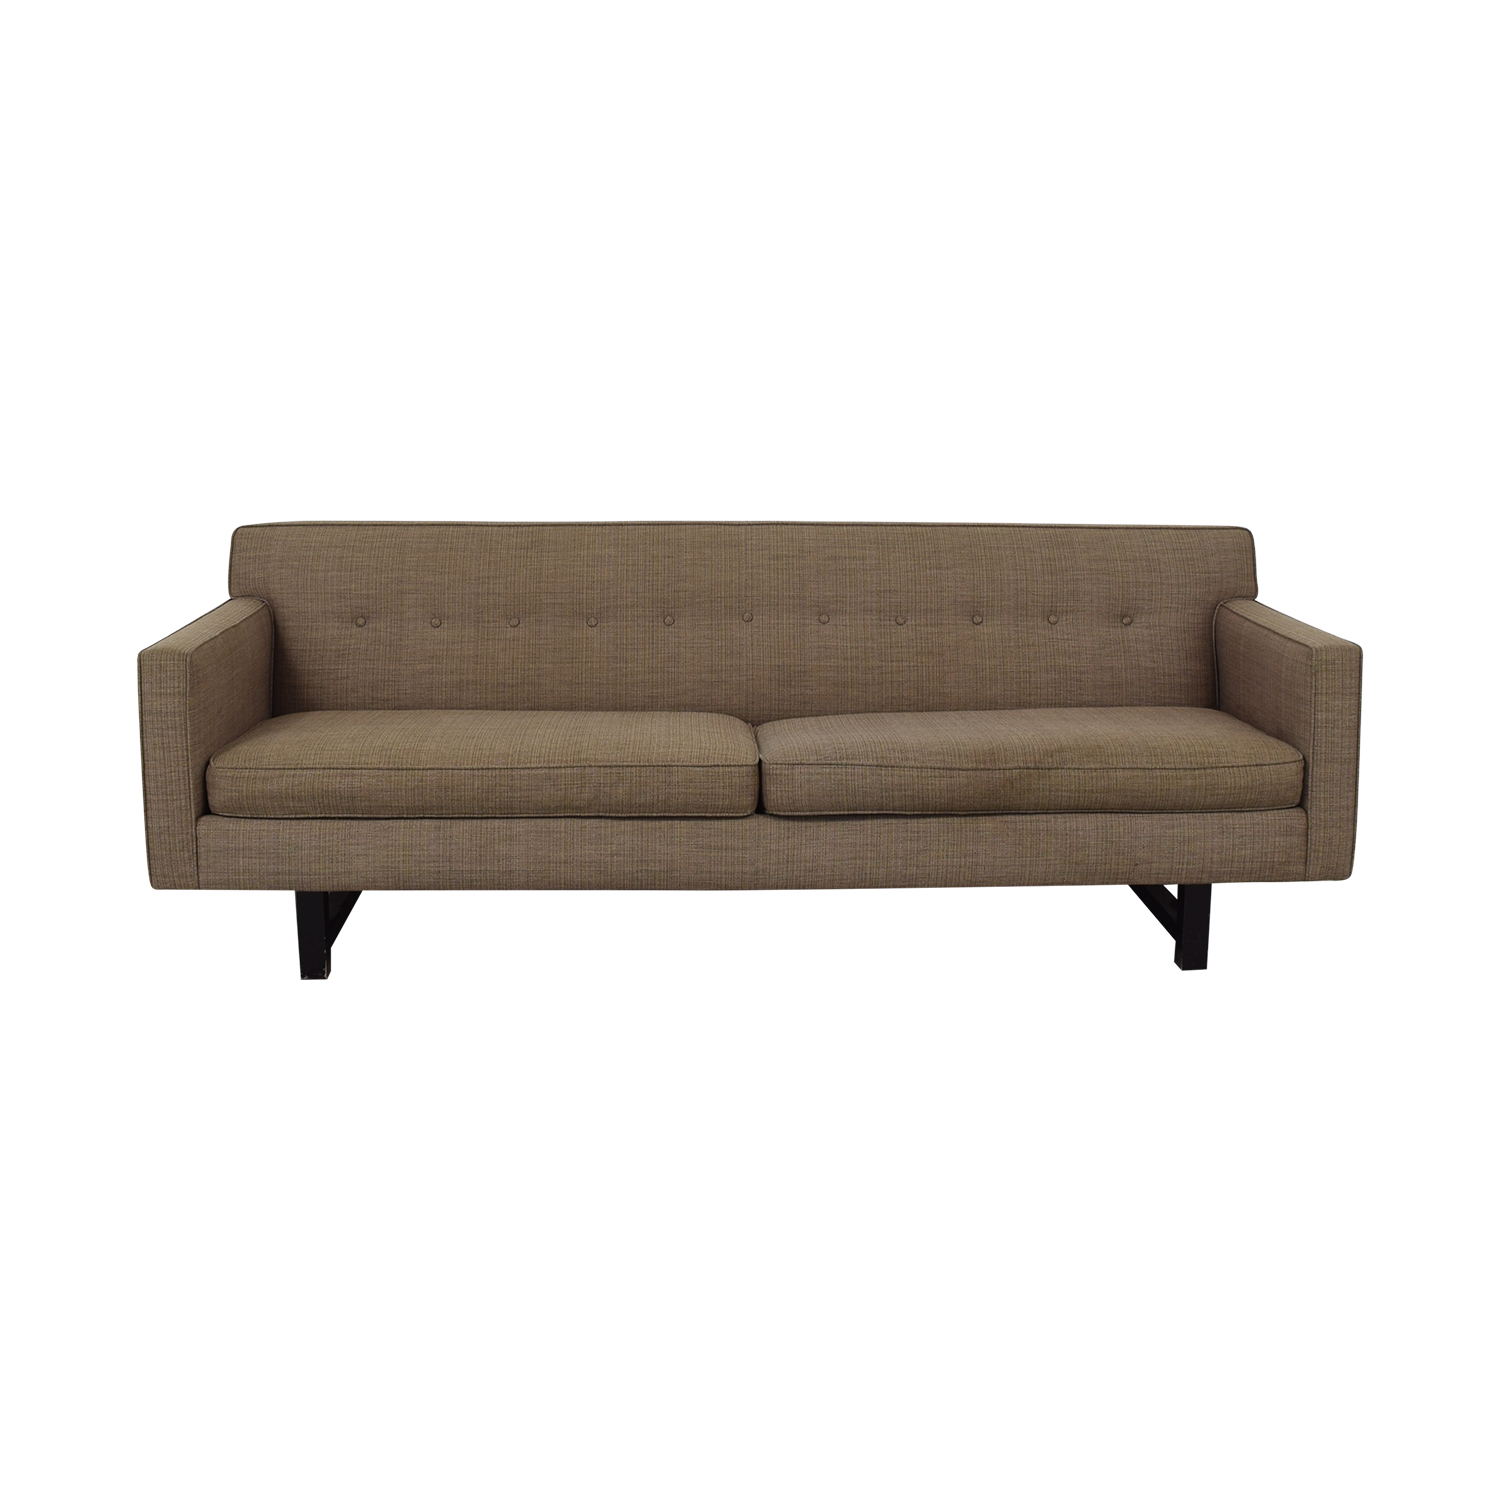 Room and Board Room & Board Andre Tan Tufted Two-Cushion Sofa for sale